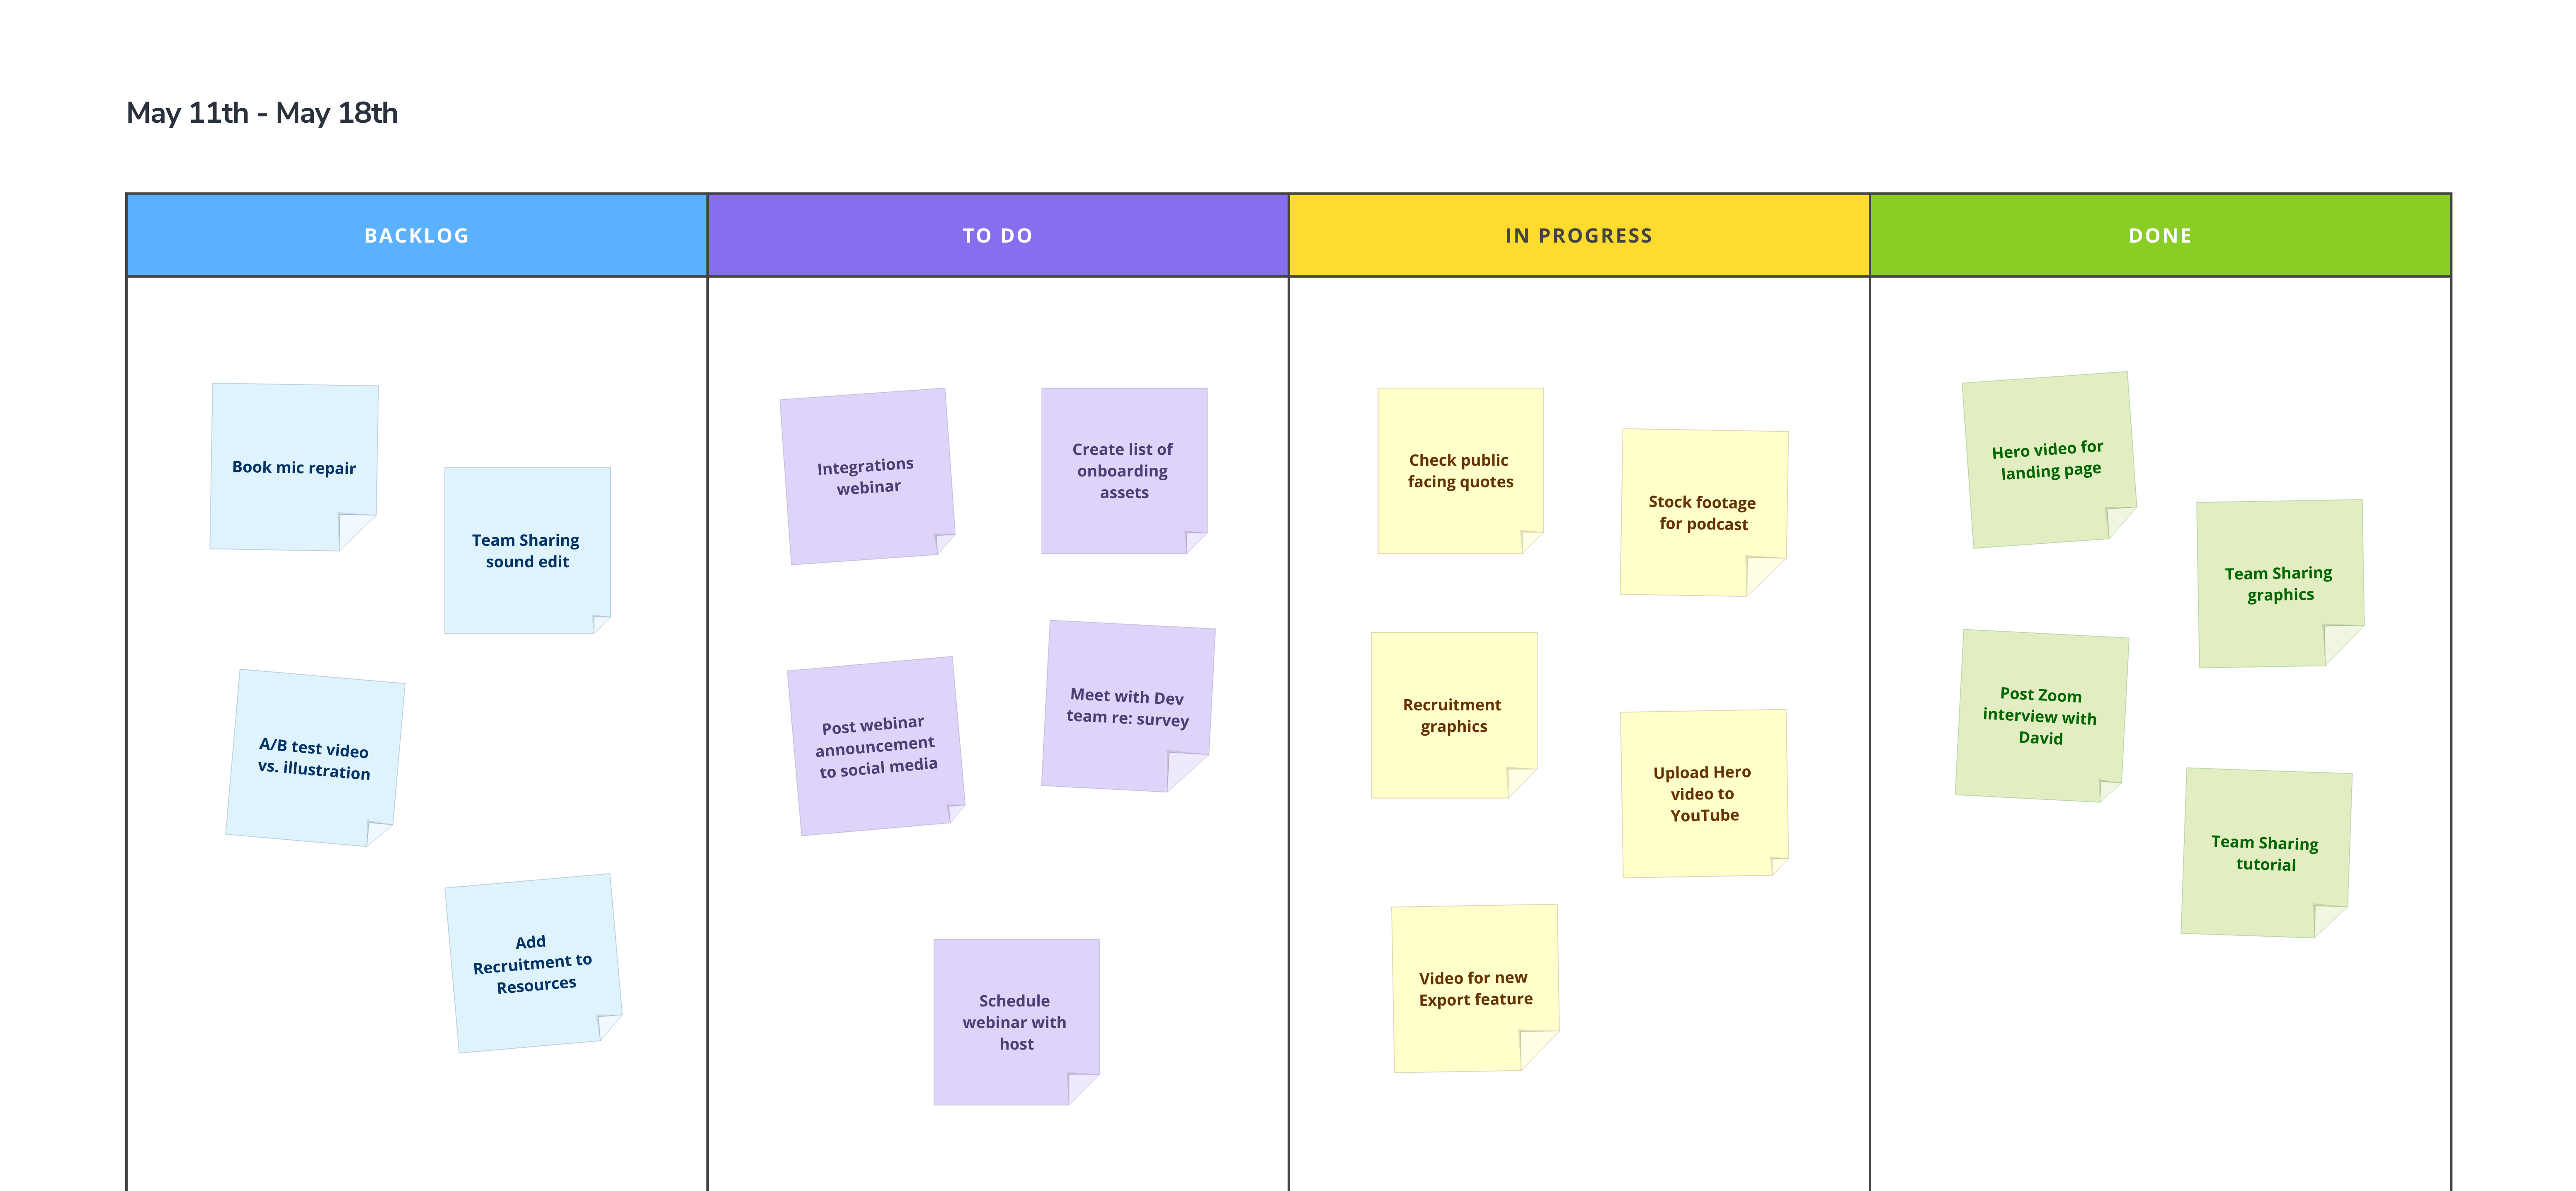 18._NEW_-_Kanban_Board_w__Container.png